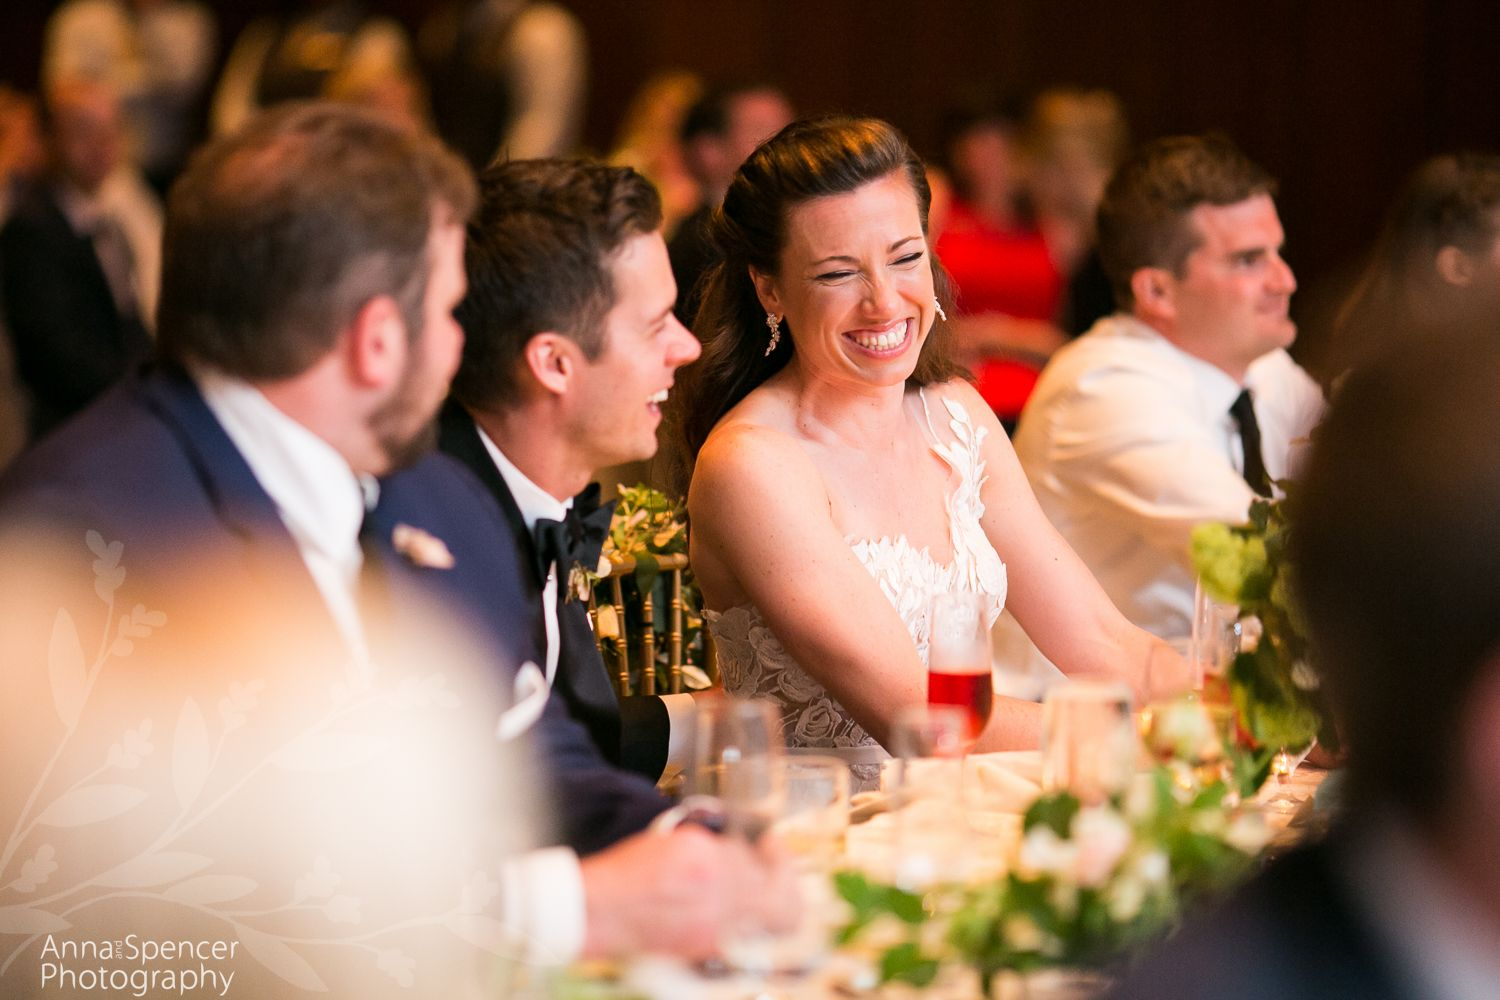 Bride and groom listening to toasts at their wedding reception